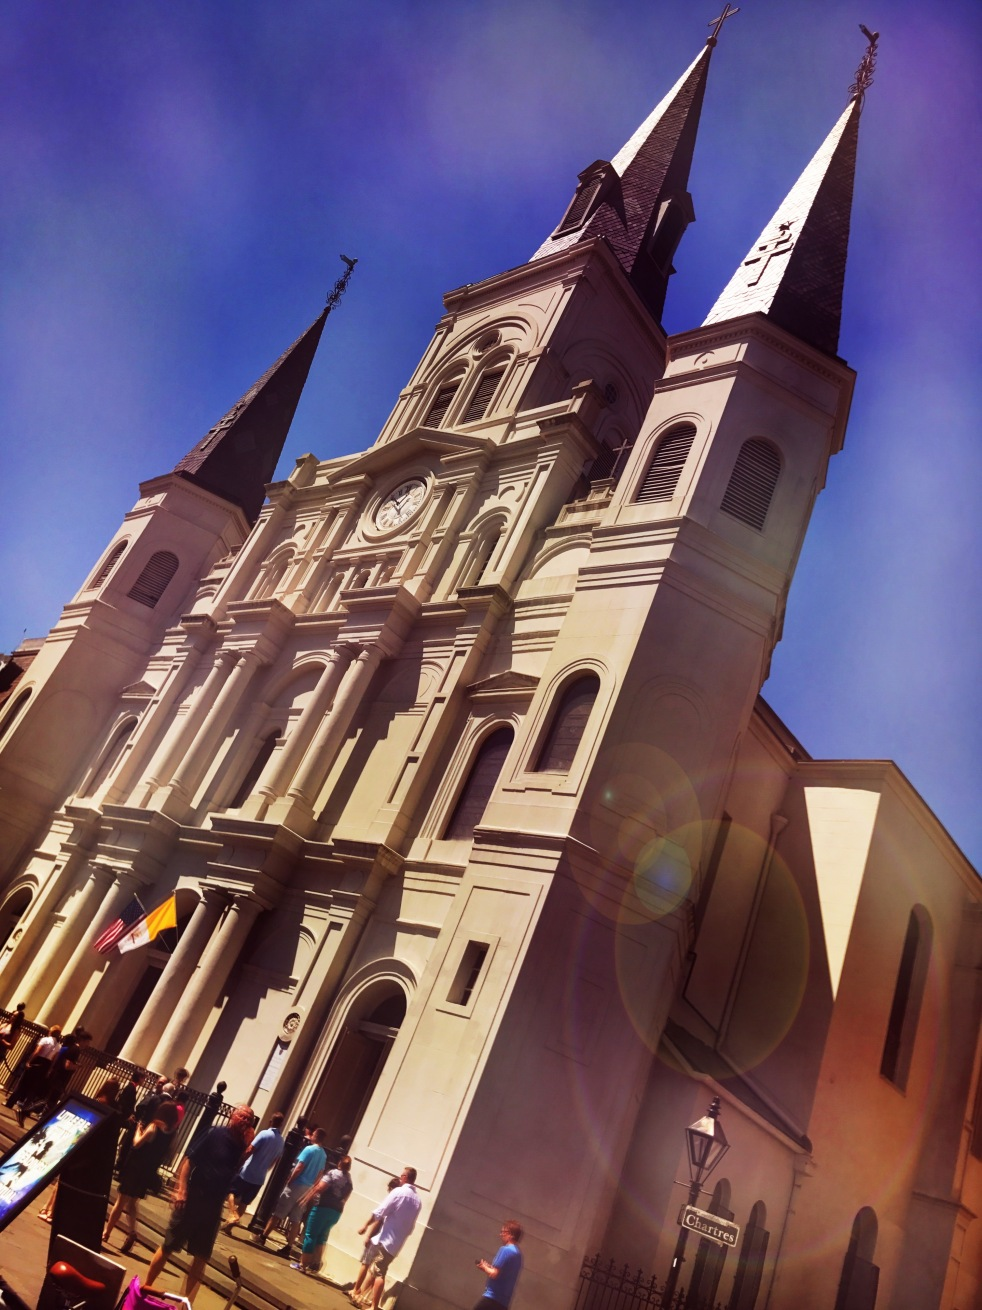 St. Louis Cathedral image